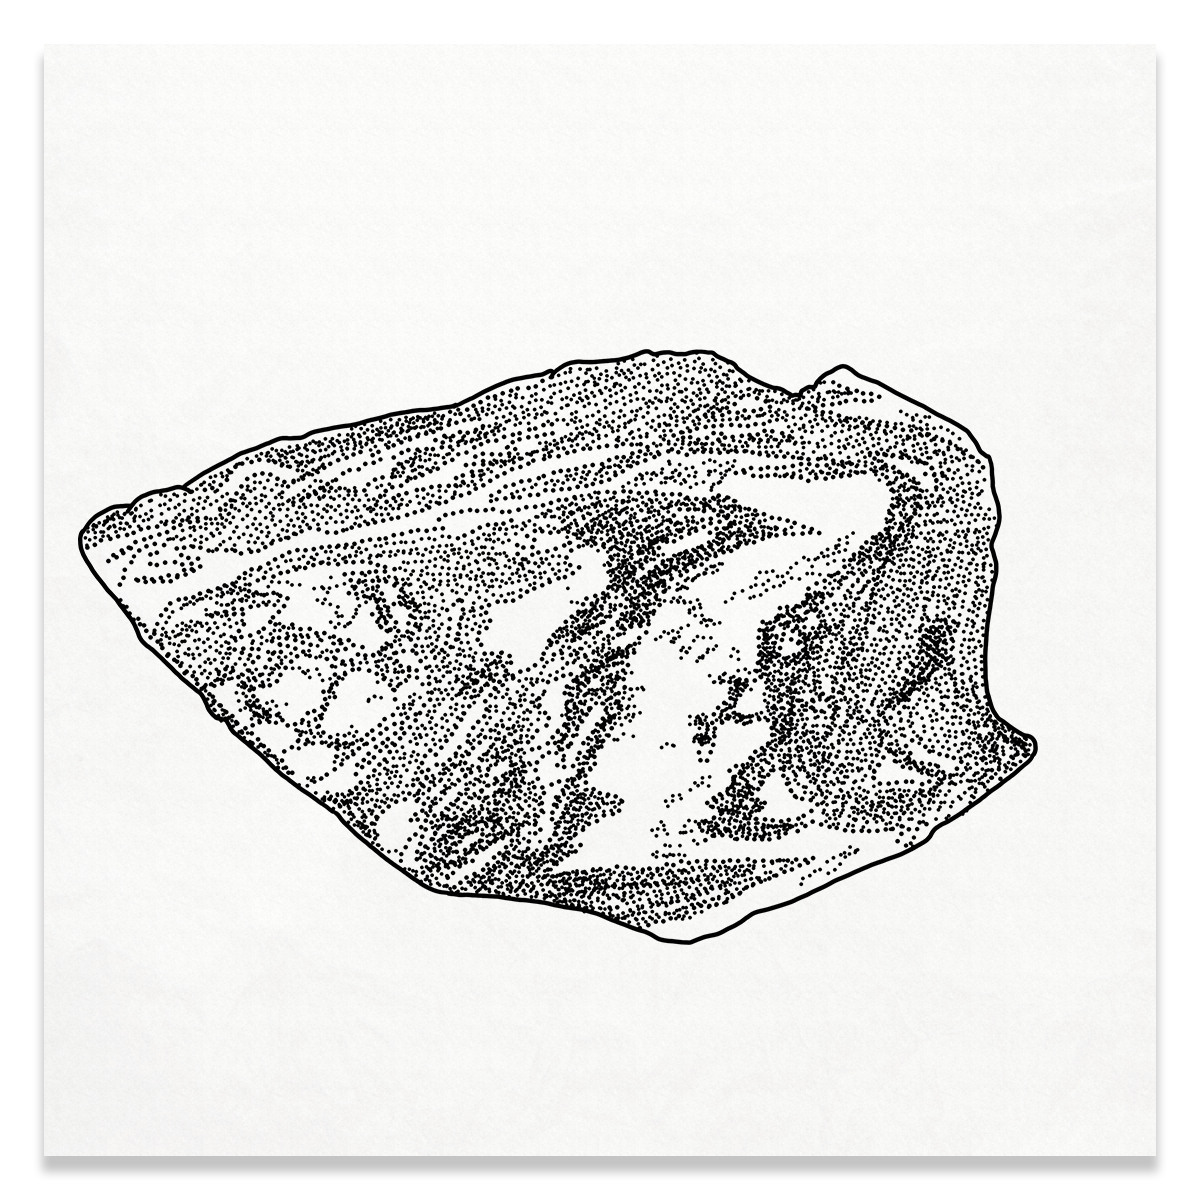 Stones_0015_16.png